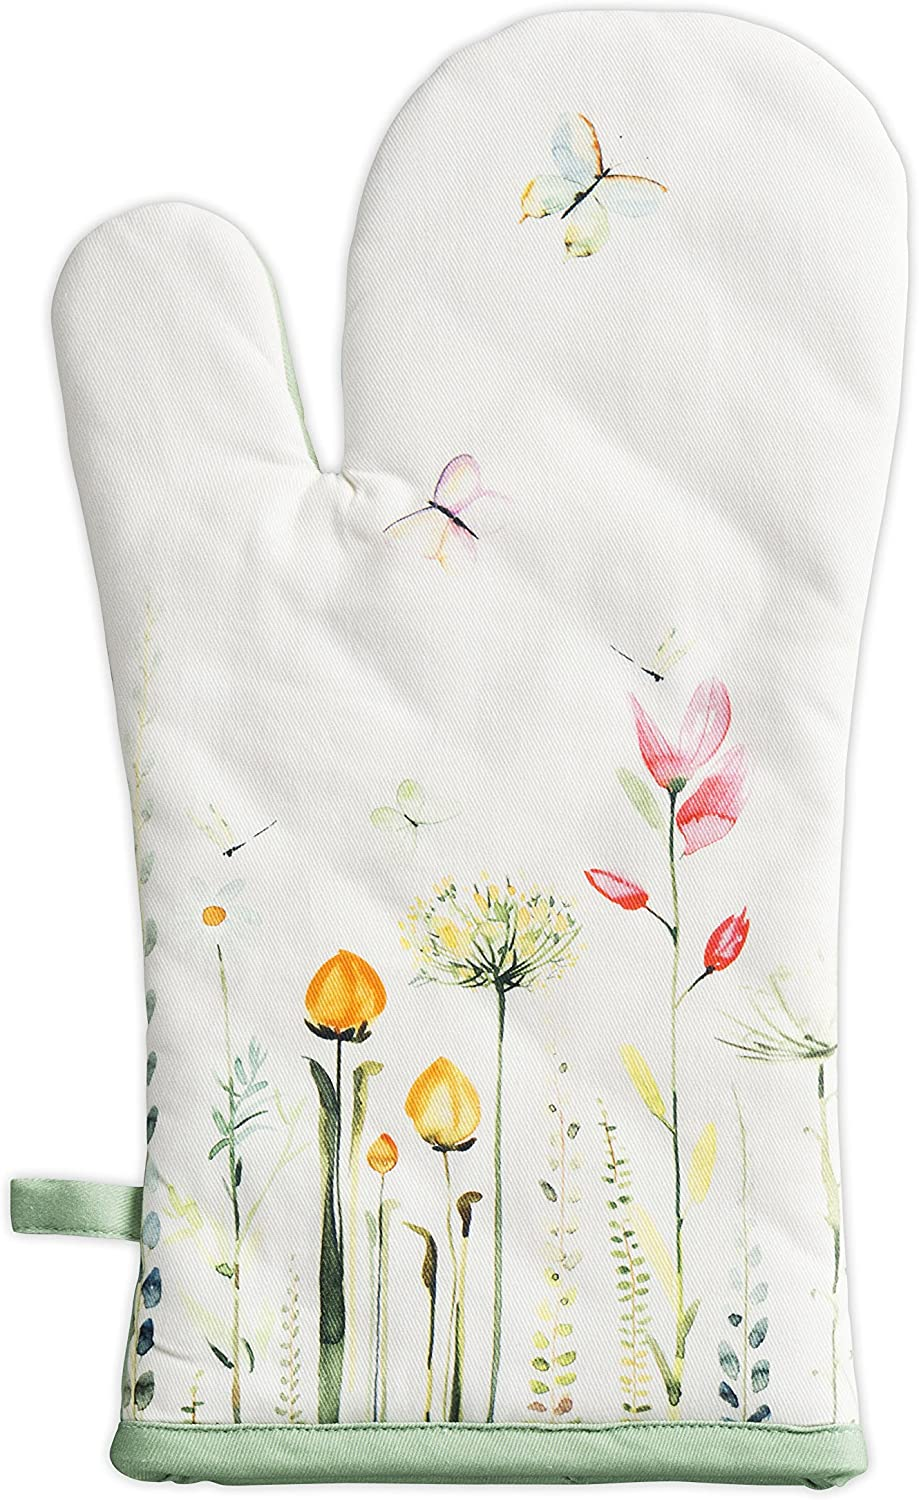 Maison d' Hermine Botanical Fresh 100% Cotton Oven Mitt 7.50 Inch by 13 Inch